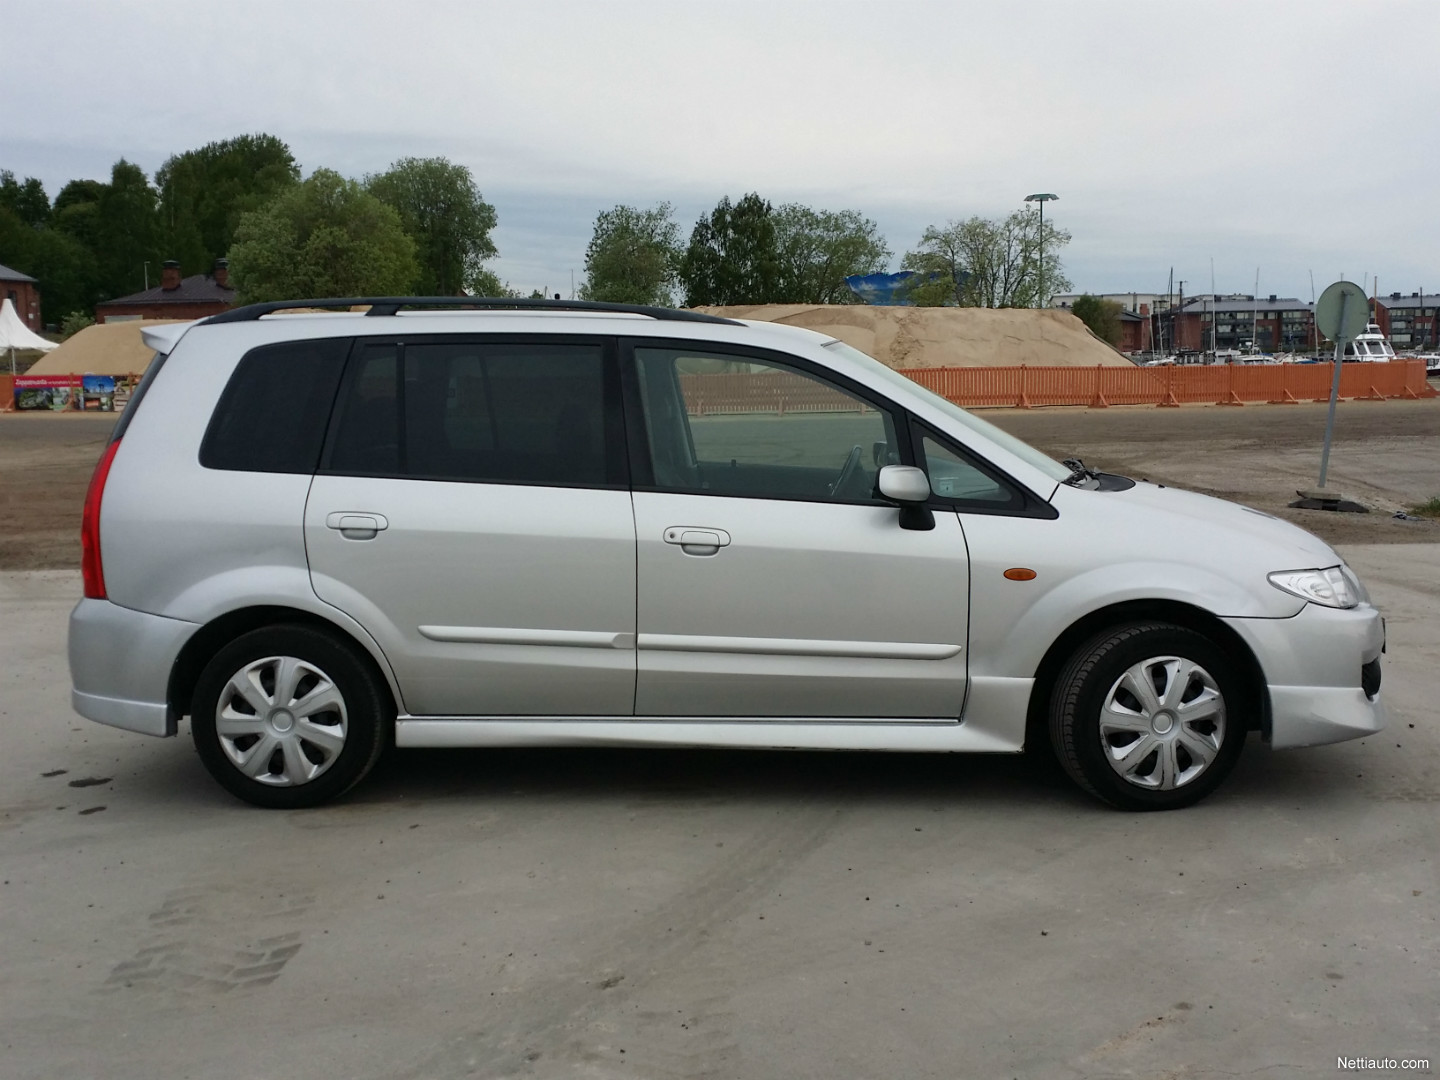 mazda premacy 2 0 exclusive 5 ov ilm p05 mpv 2002 used vehicle nettiauto. Black Bedroom Furniture Sets. Home Design Ideas